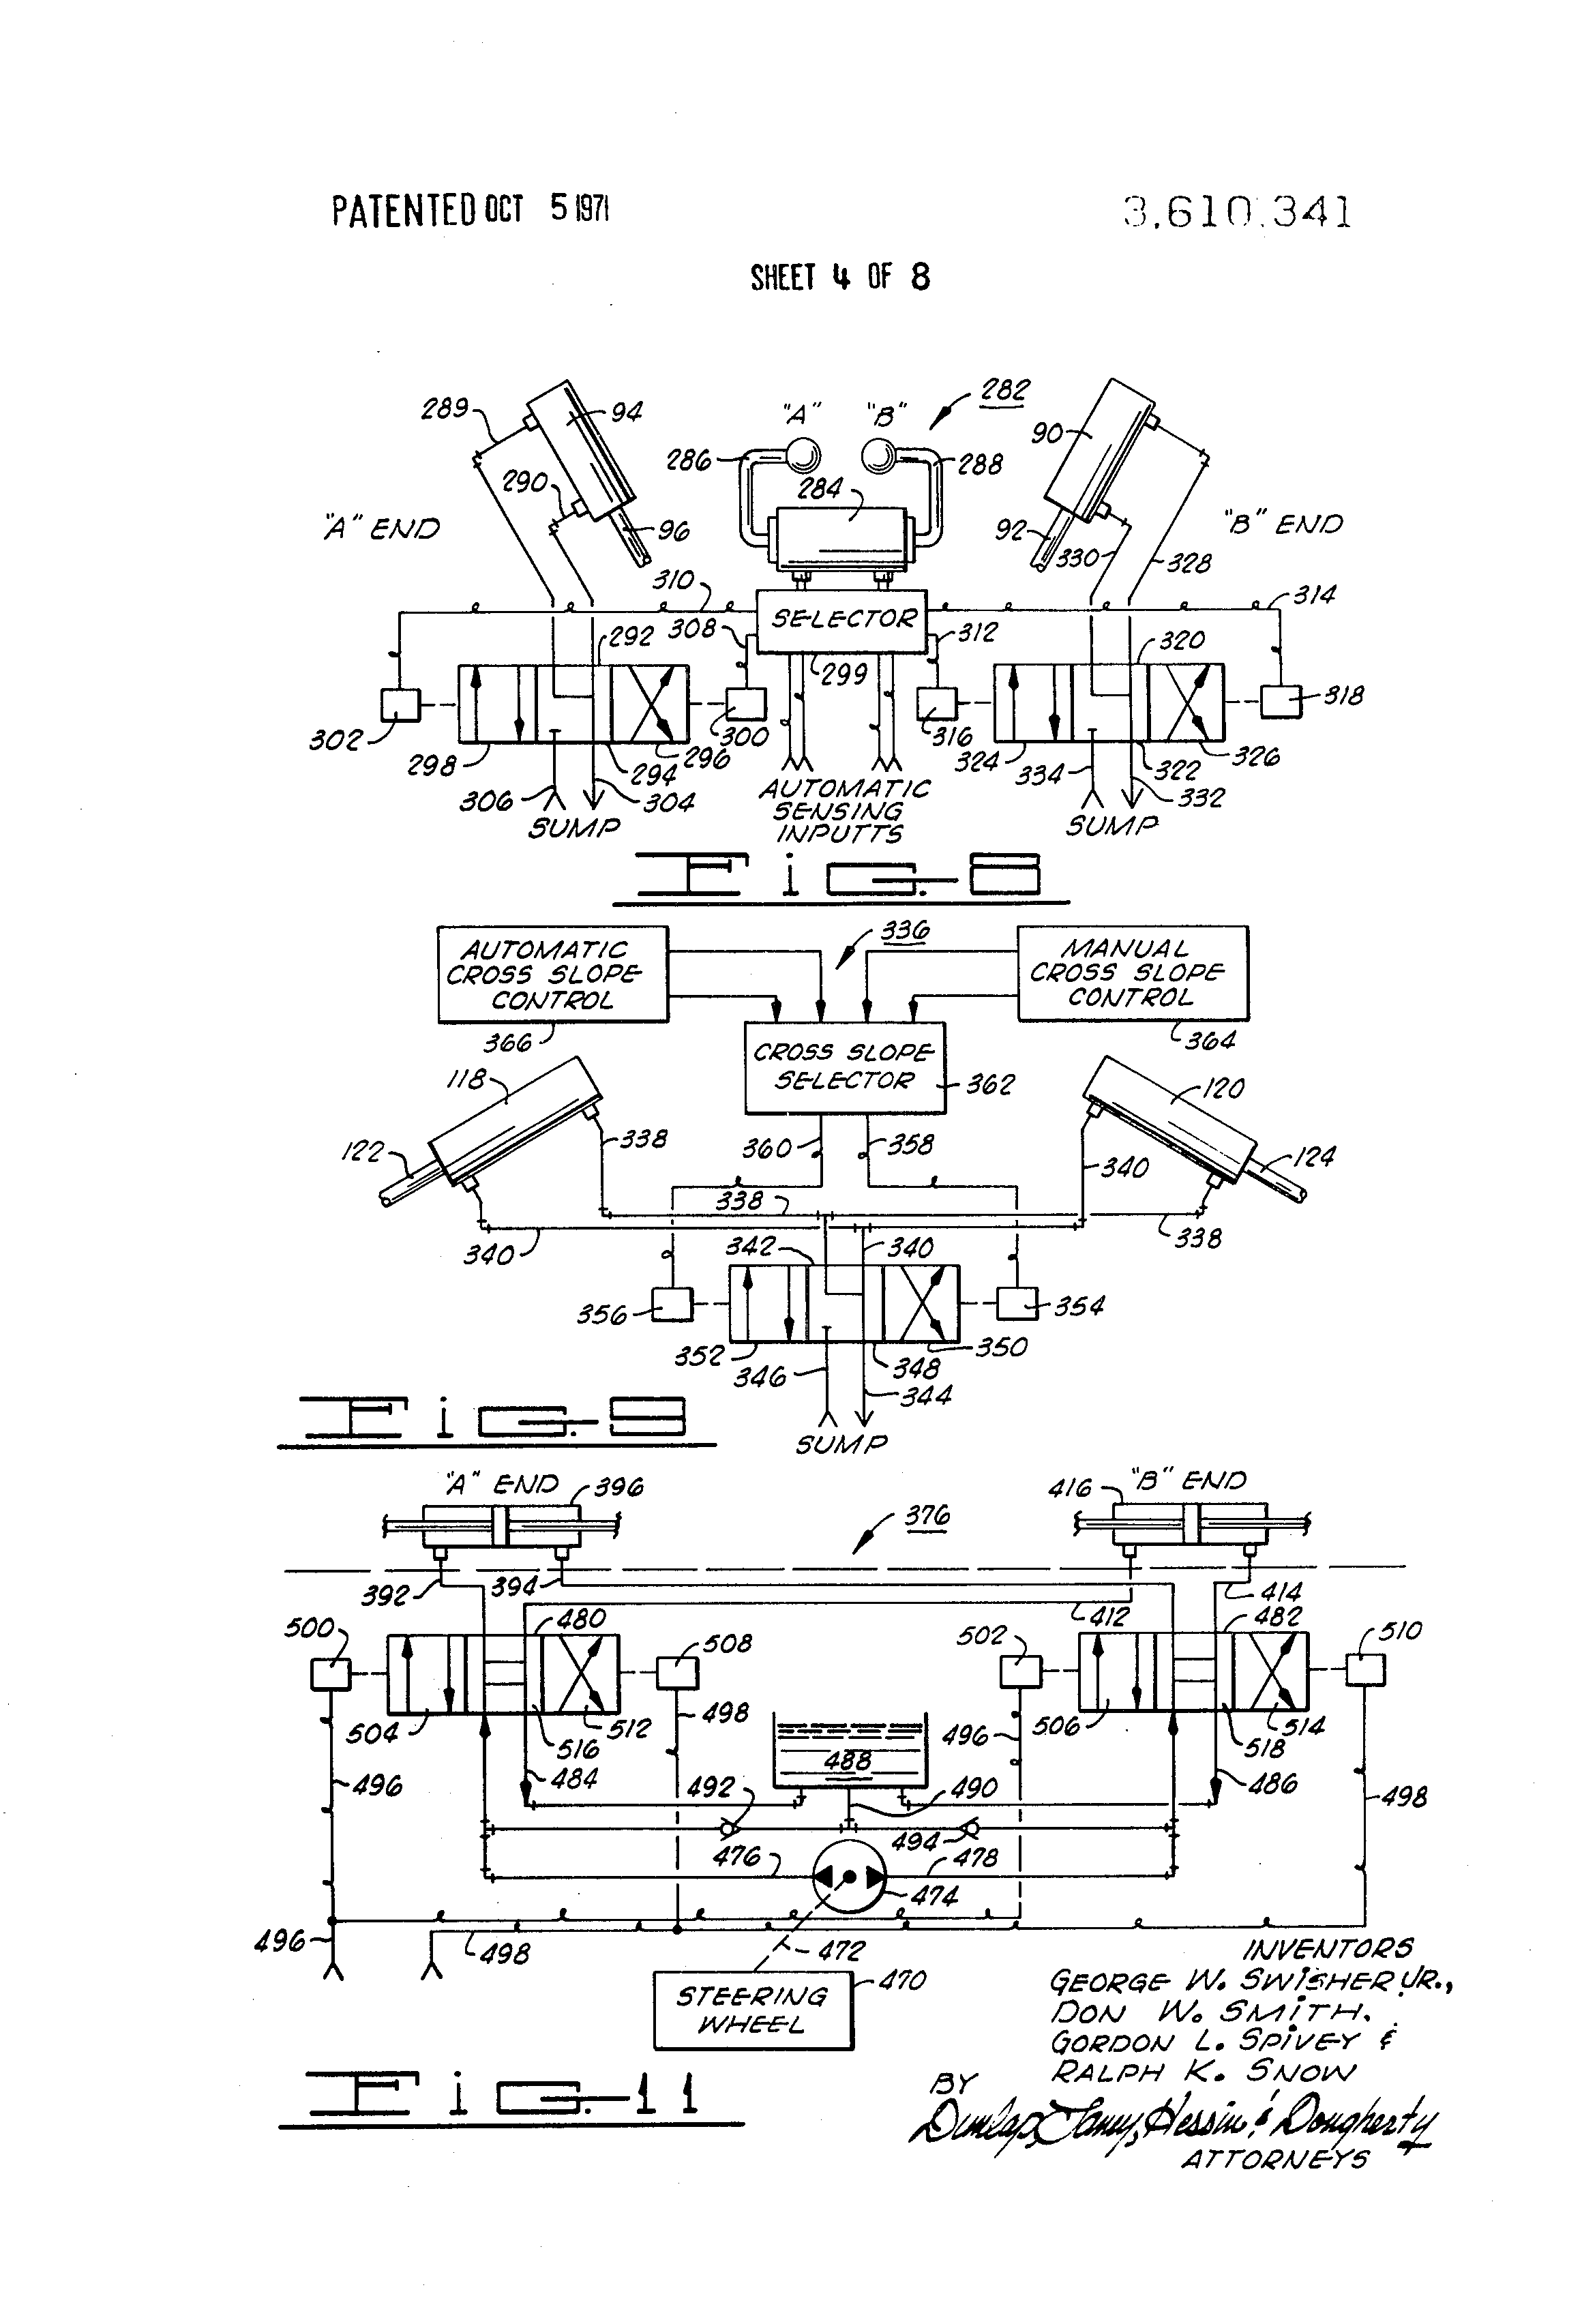 ih 574 tractor hydraulic schematic  ih  get free image about wiring diagram wiring diagram for farmall 400 gas tractor 2003 Ford E- 450 Wiring-Diagram